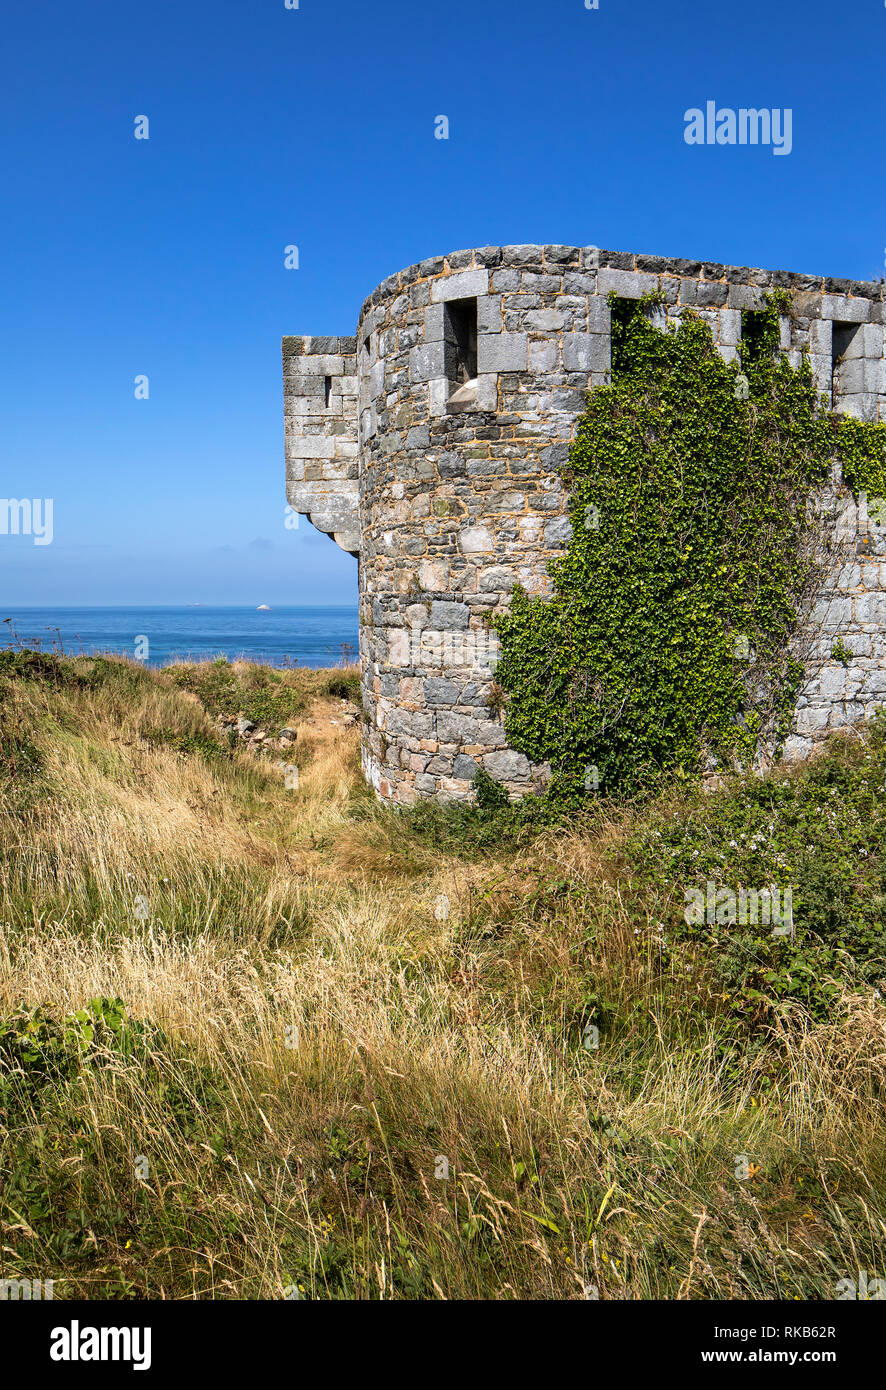 The most inland tower of Fort Tourgis on Alderney - Stock Image